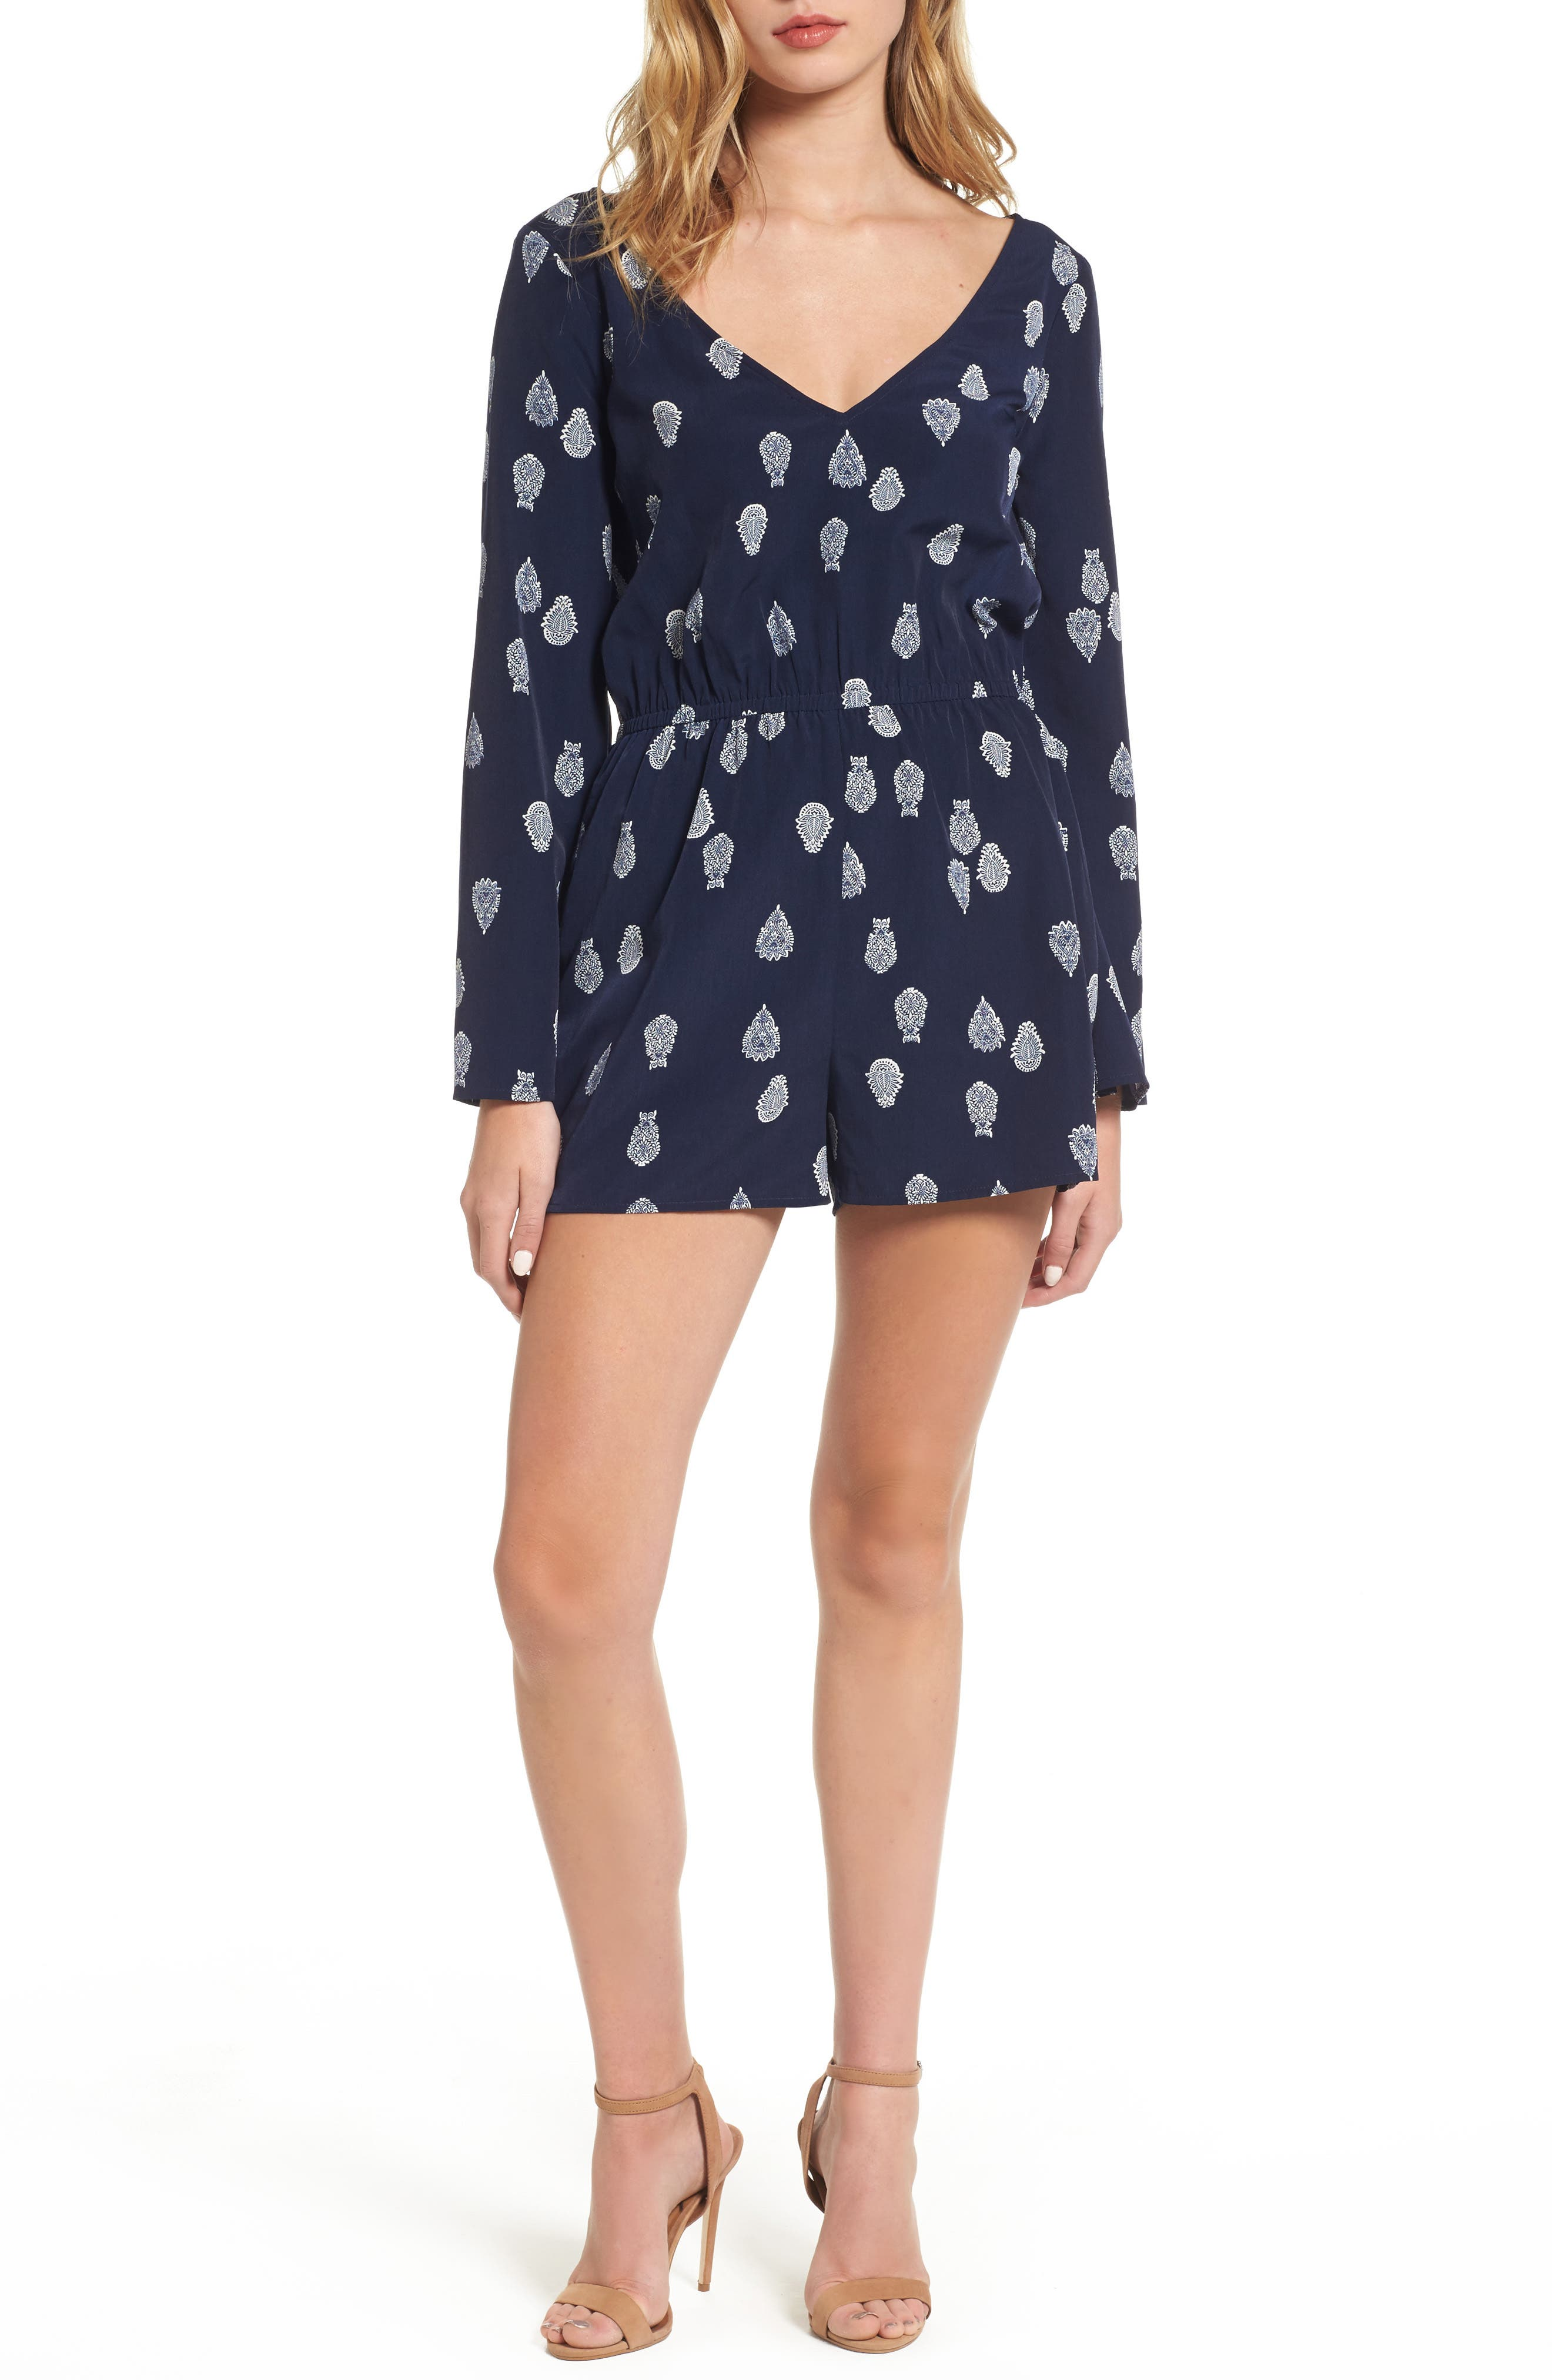 cupcakes and cashmere Harley Romper